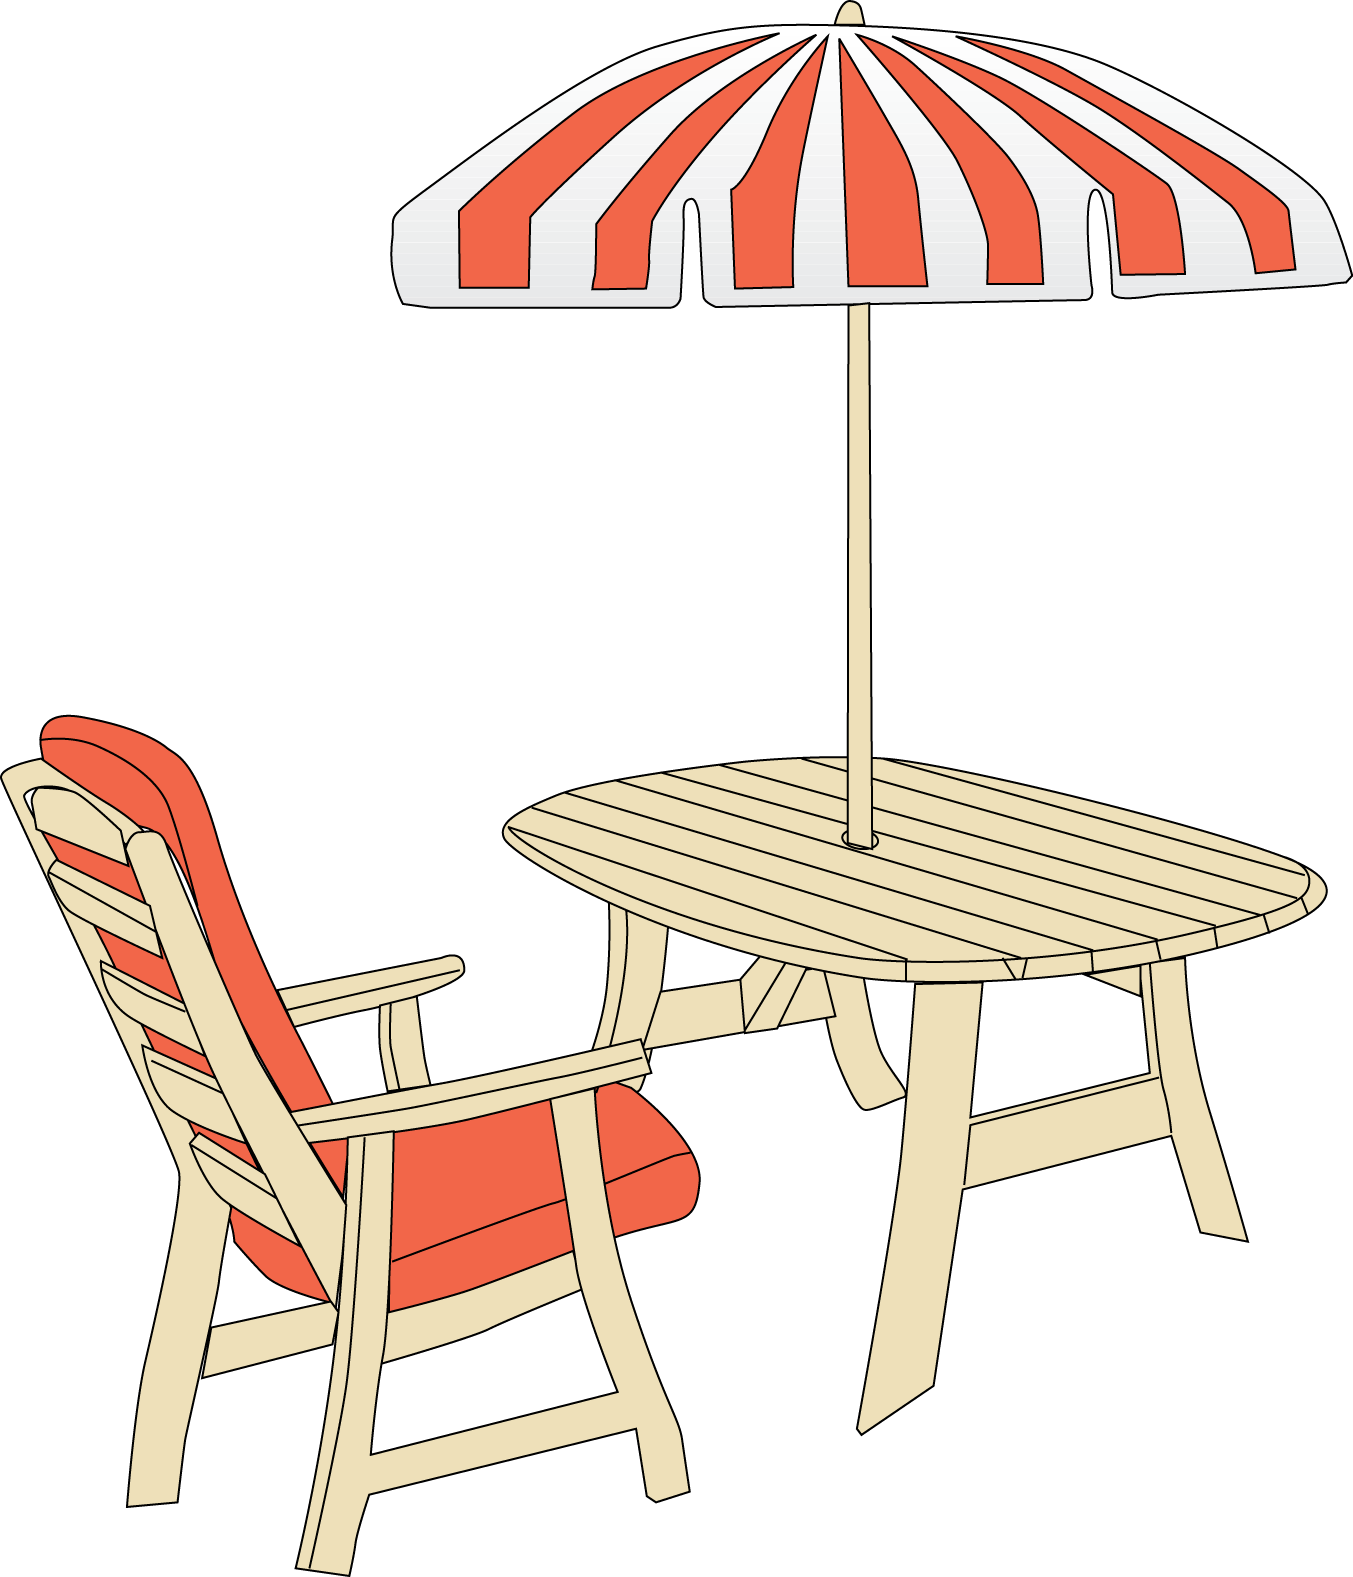 53 Images Of Lawn Chair Clip Art   You Can Use These Free Cliparts For